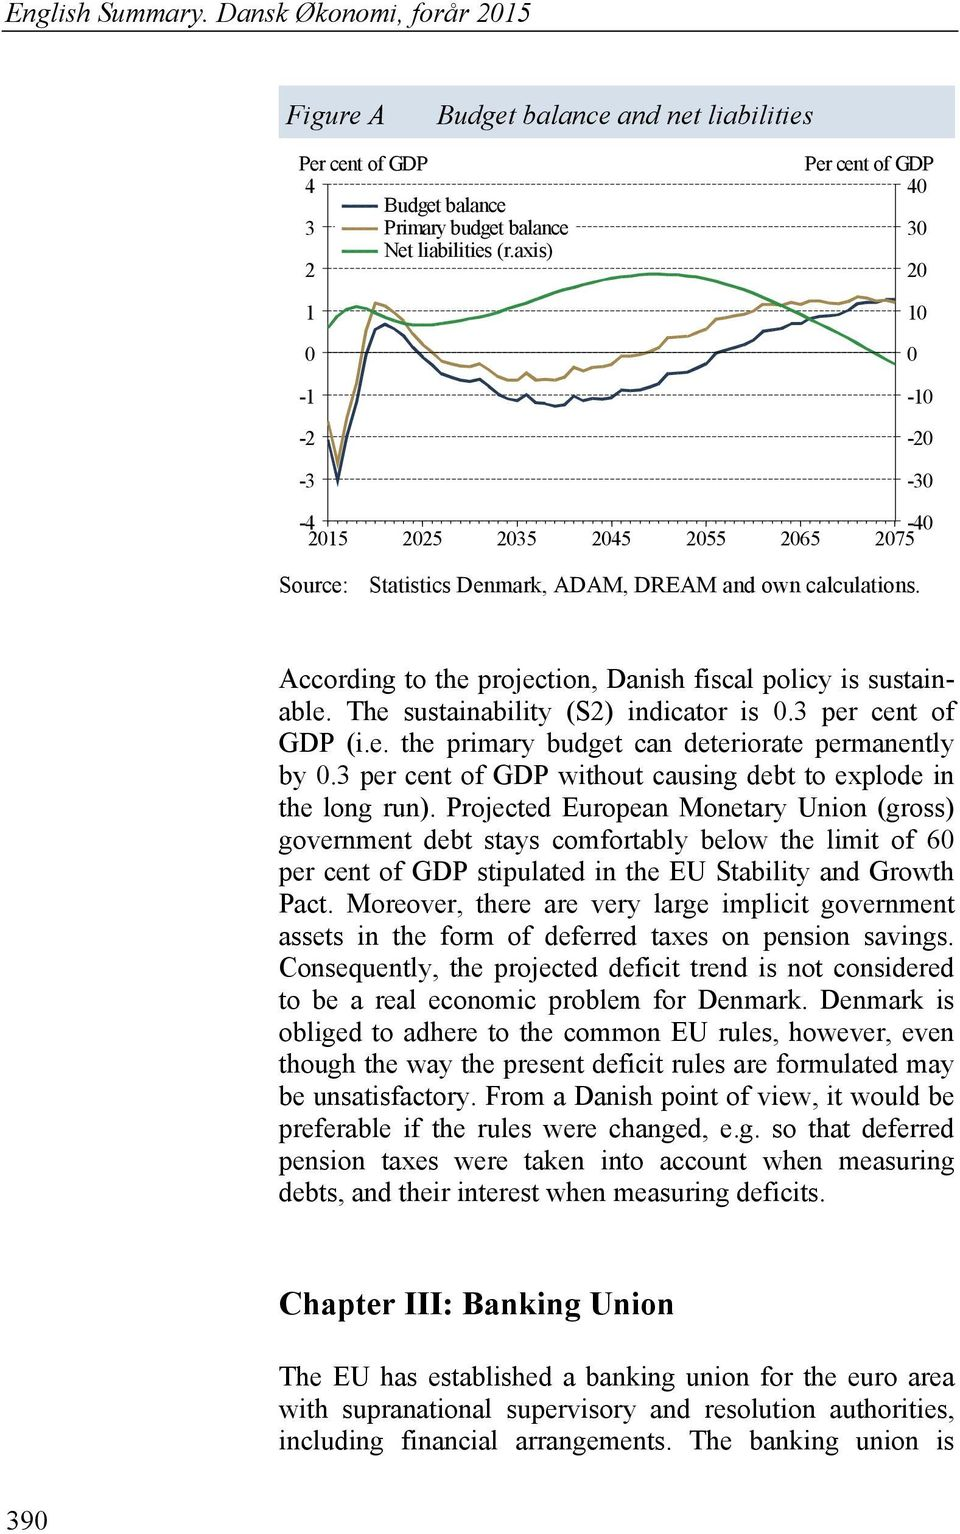 According to the projection, Danish fiscal policy is sustainable. The sustainability (S2) indicator is 0.3 per cent of GDP (i.e. the primary budget can deteriorate permanently by 0.